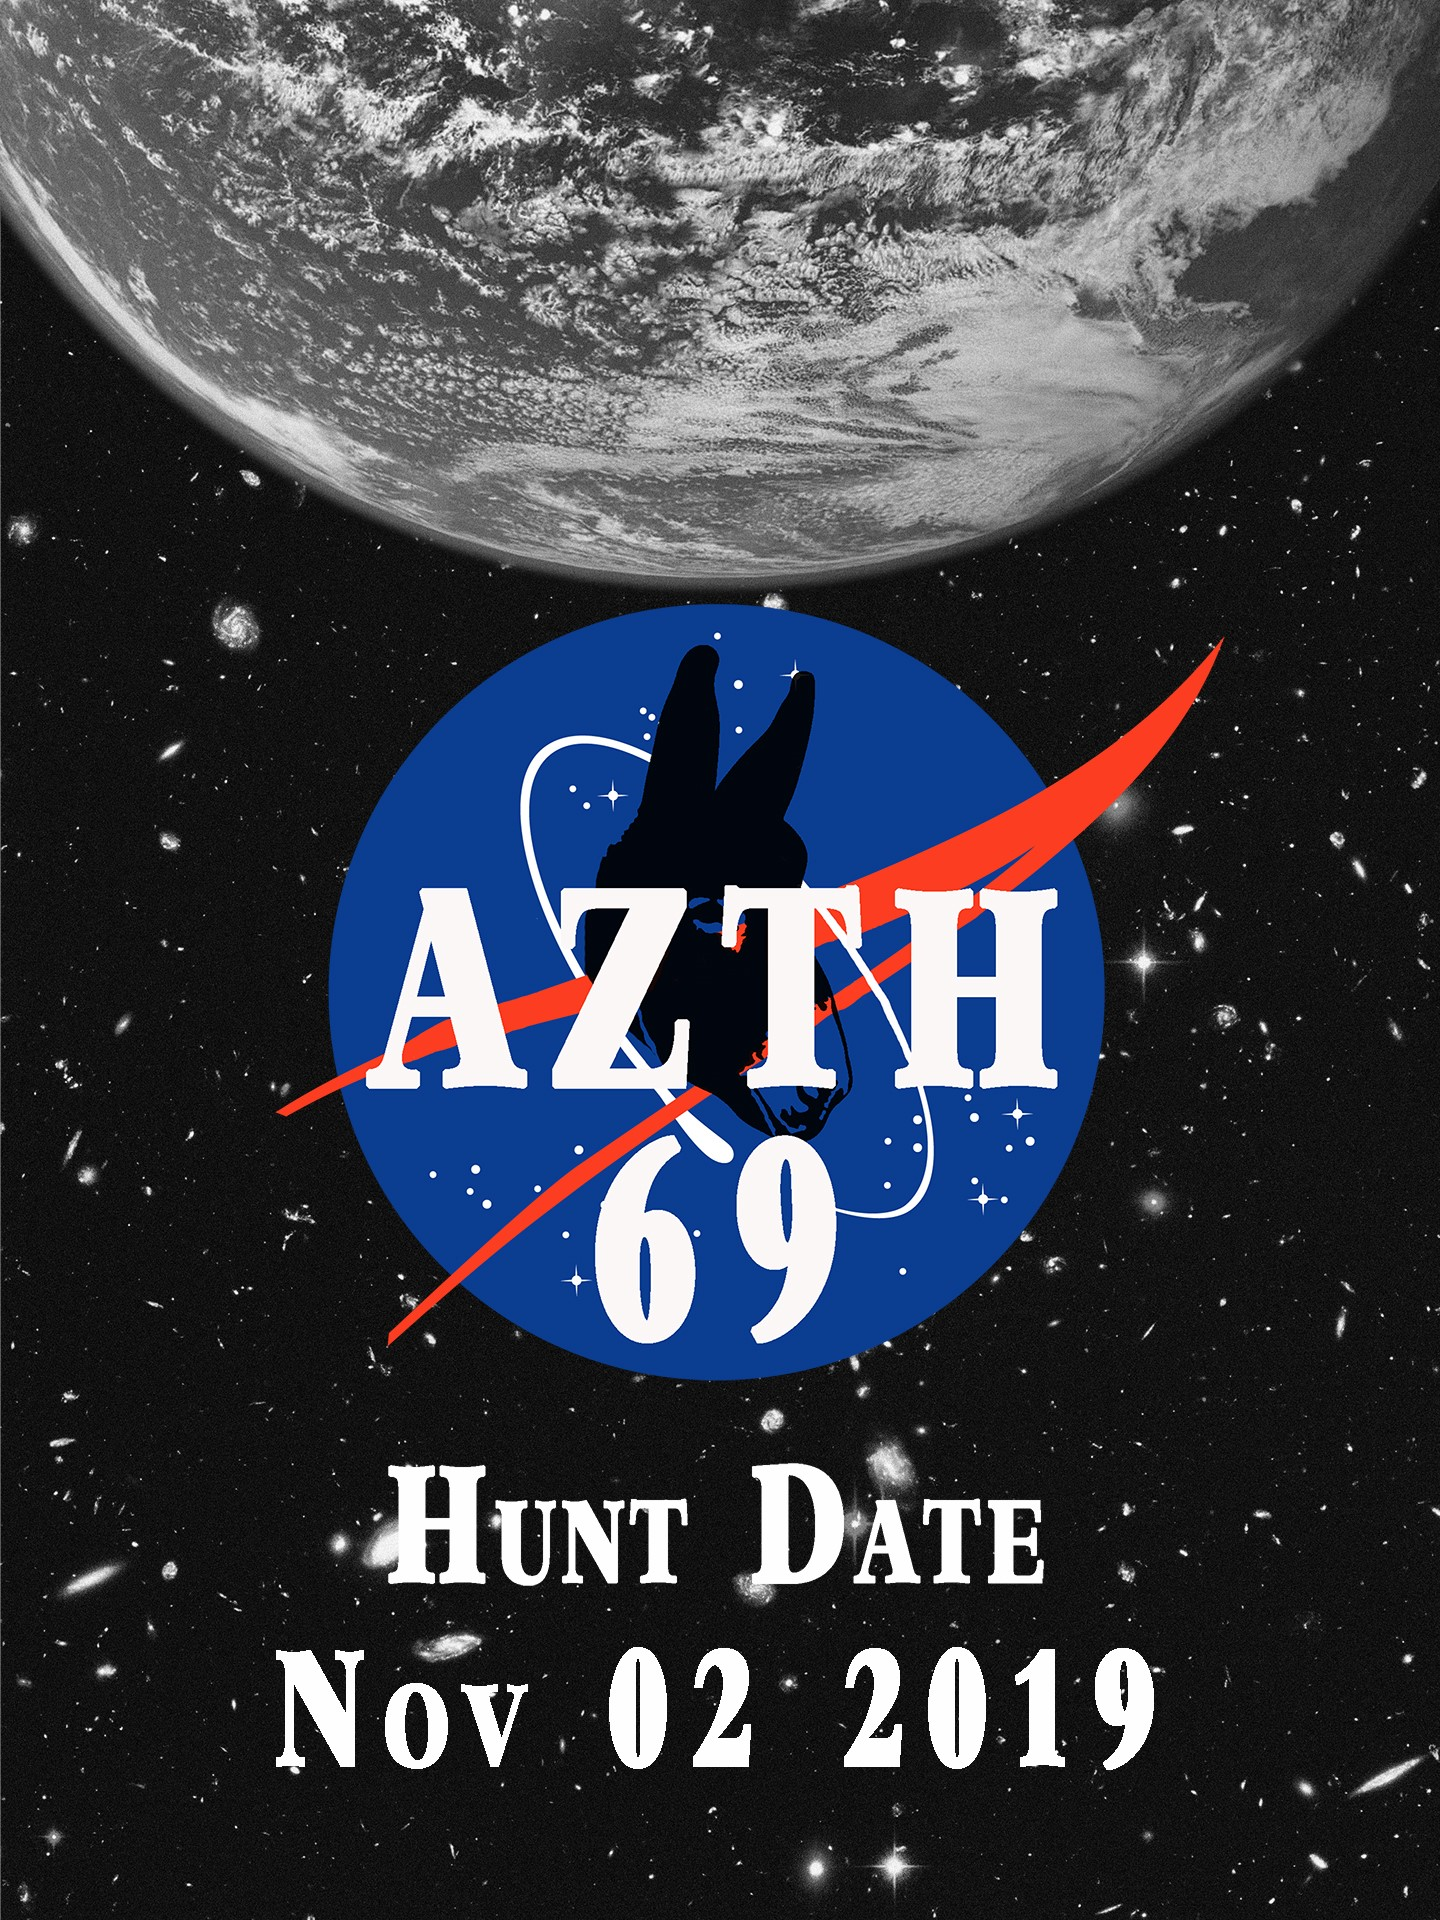 To boldly hunt where no one has hunted before!* - *Unless you have competed in the Arizona Treasure Hunt in the past.